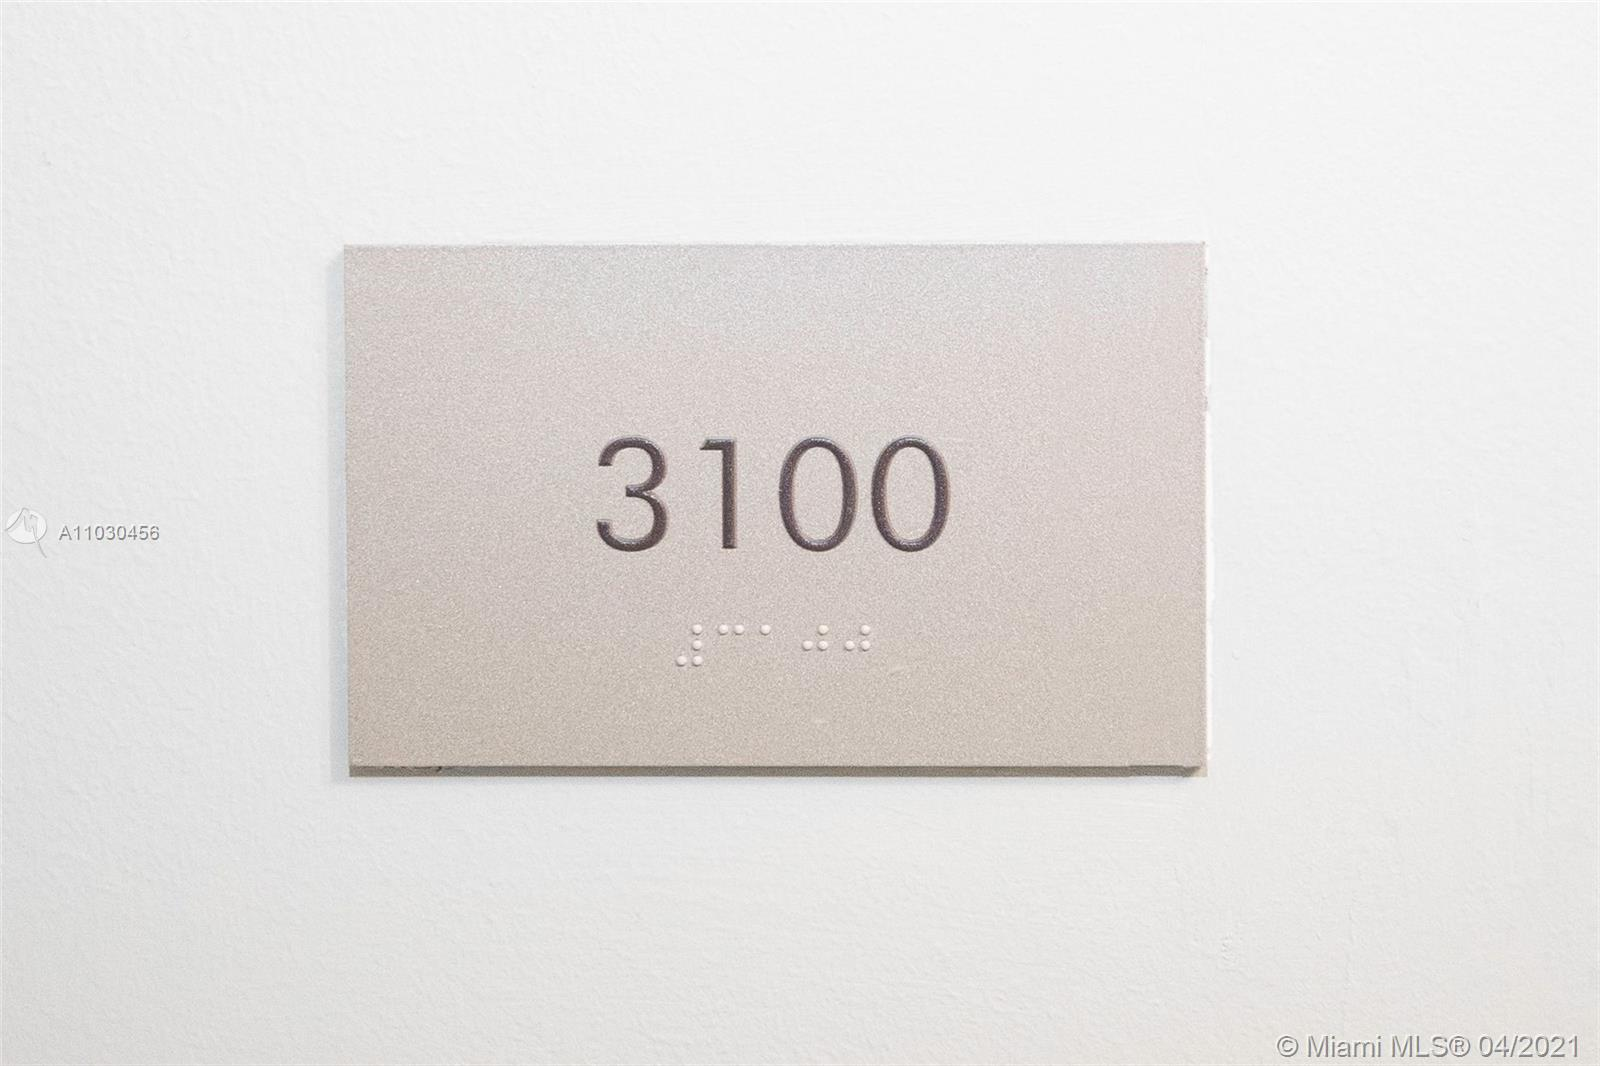 18975 Collins Ave, Unit #3100 Luxury Real Estate